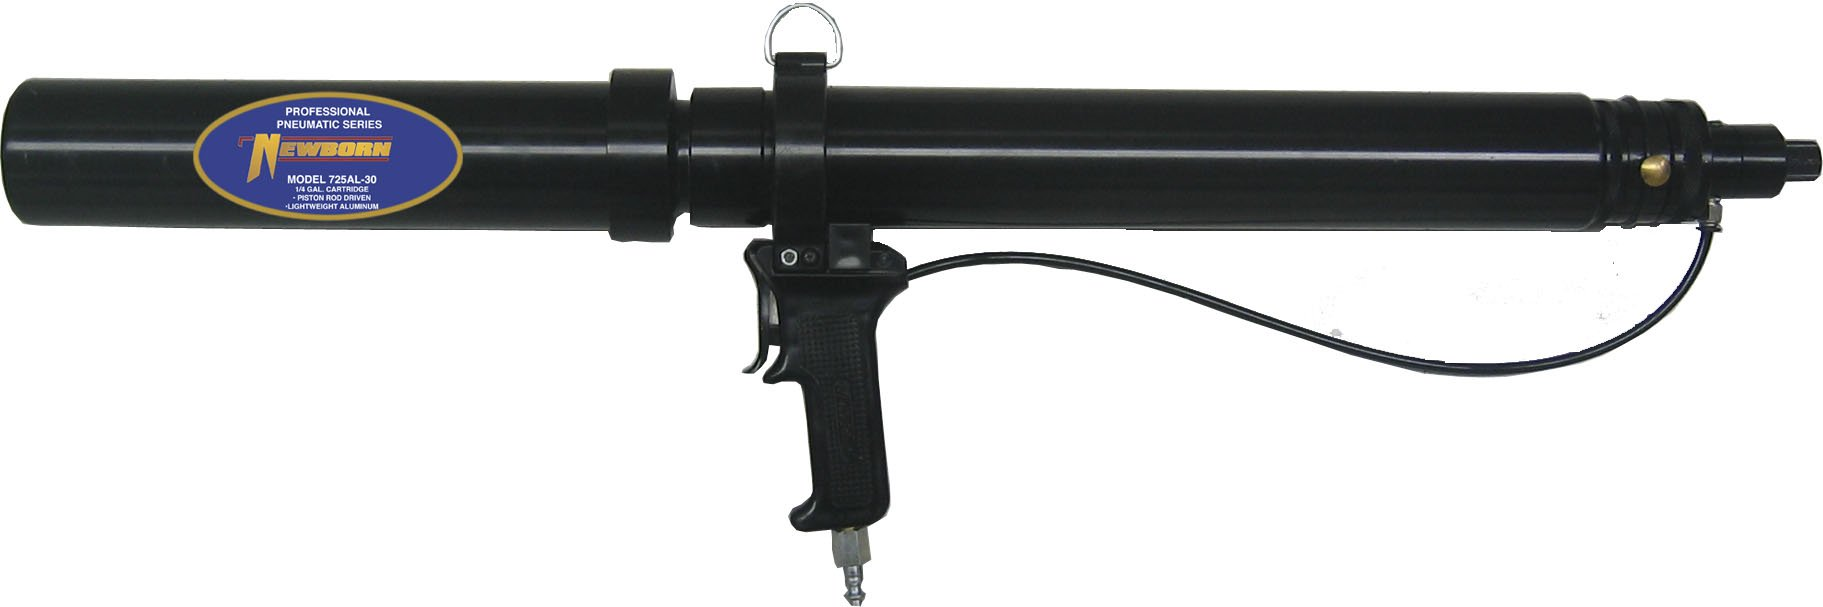 Newborn 725AL-30 Rod Driven Pneumatic Applicator with Lightweight Aluminum Barrel, for 1/4 Gallon Cartridges, 100 psi